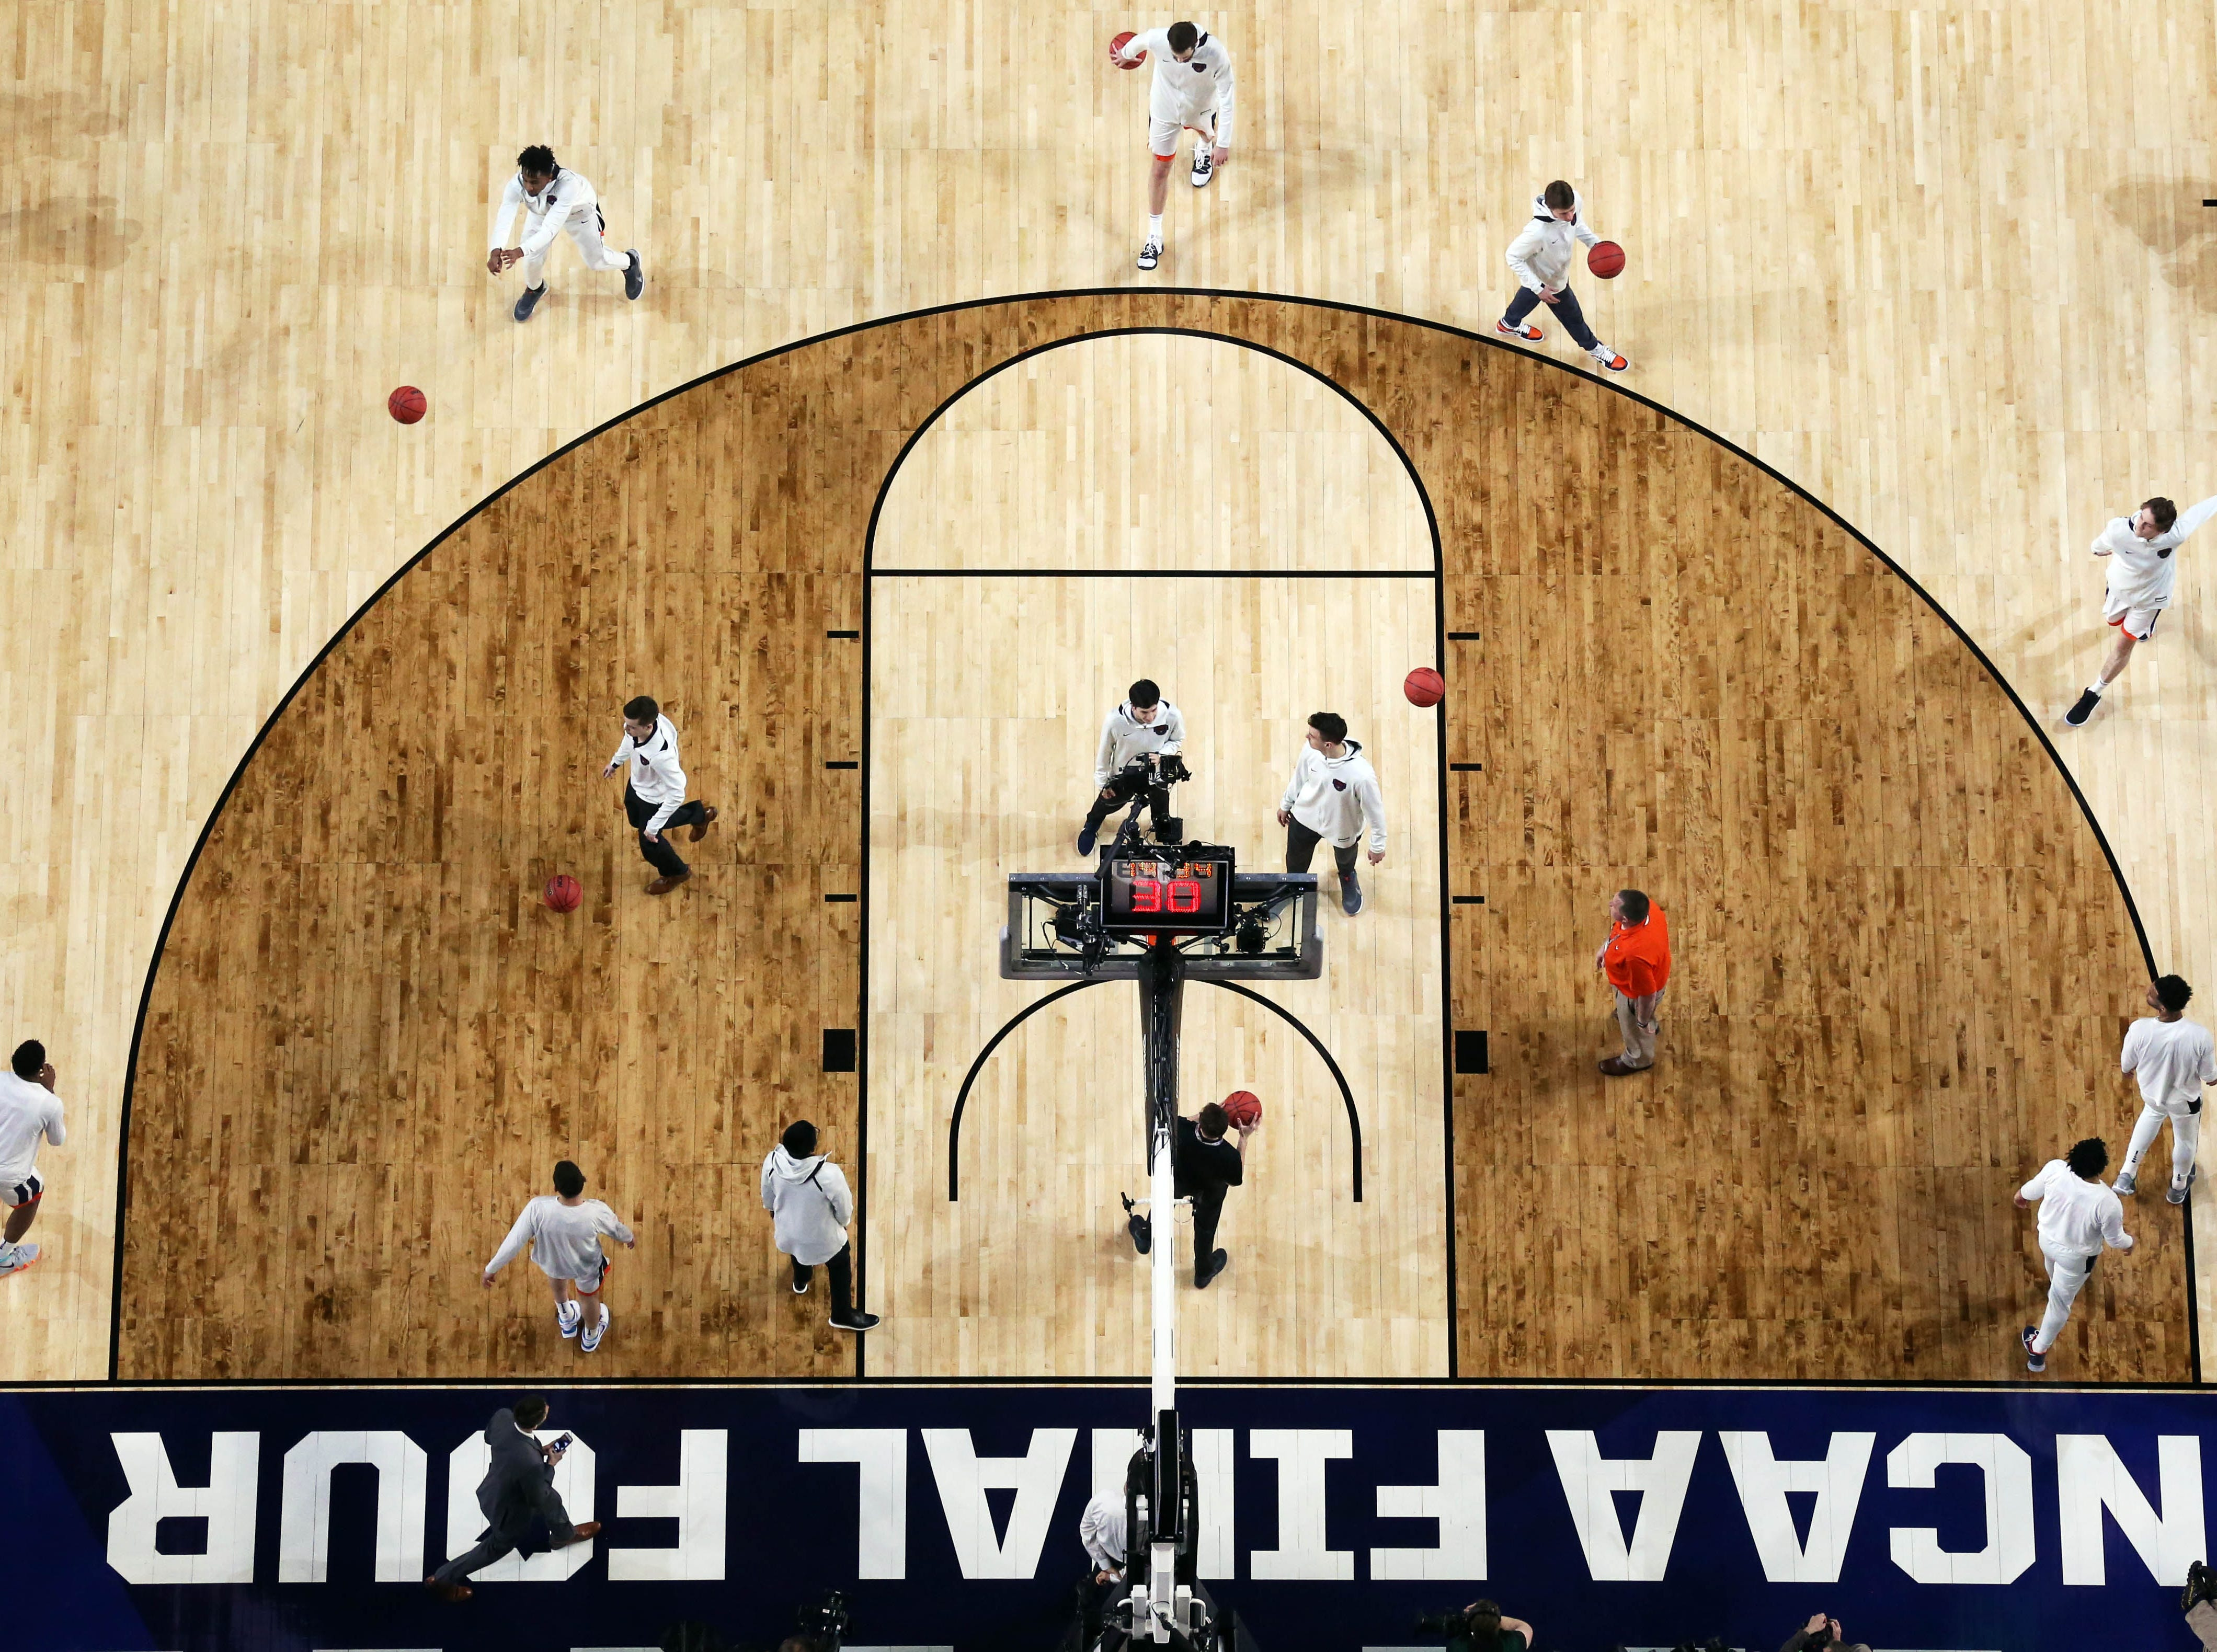 Apr 8, 2019; Minneapolis, MN, USA; The Virginia Cavaliers men's basketball team warms up prior to the start of the championship game of the 2019 men's Final Four against the Texas Tech Red Raiders at US Bank Stadium. Mandatory Credit: Bob Donnan-USA TODAY Sports